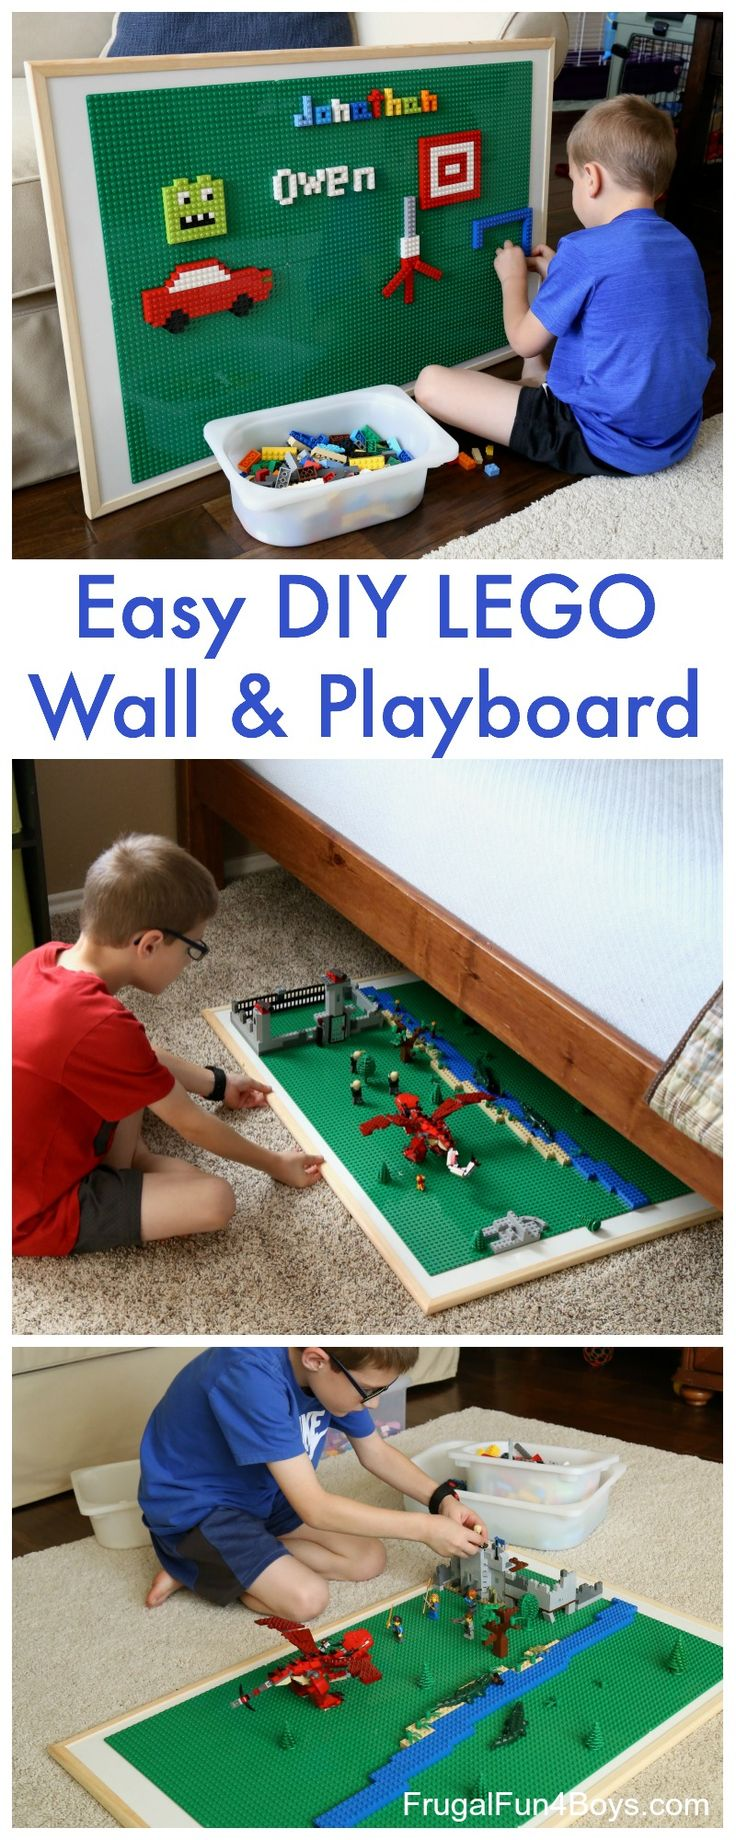 Build your own LEGO Wall, and it doubles as a play board for creating huge LEGO scenes. The whole thing can easily slide under a bed!